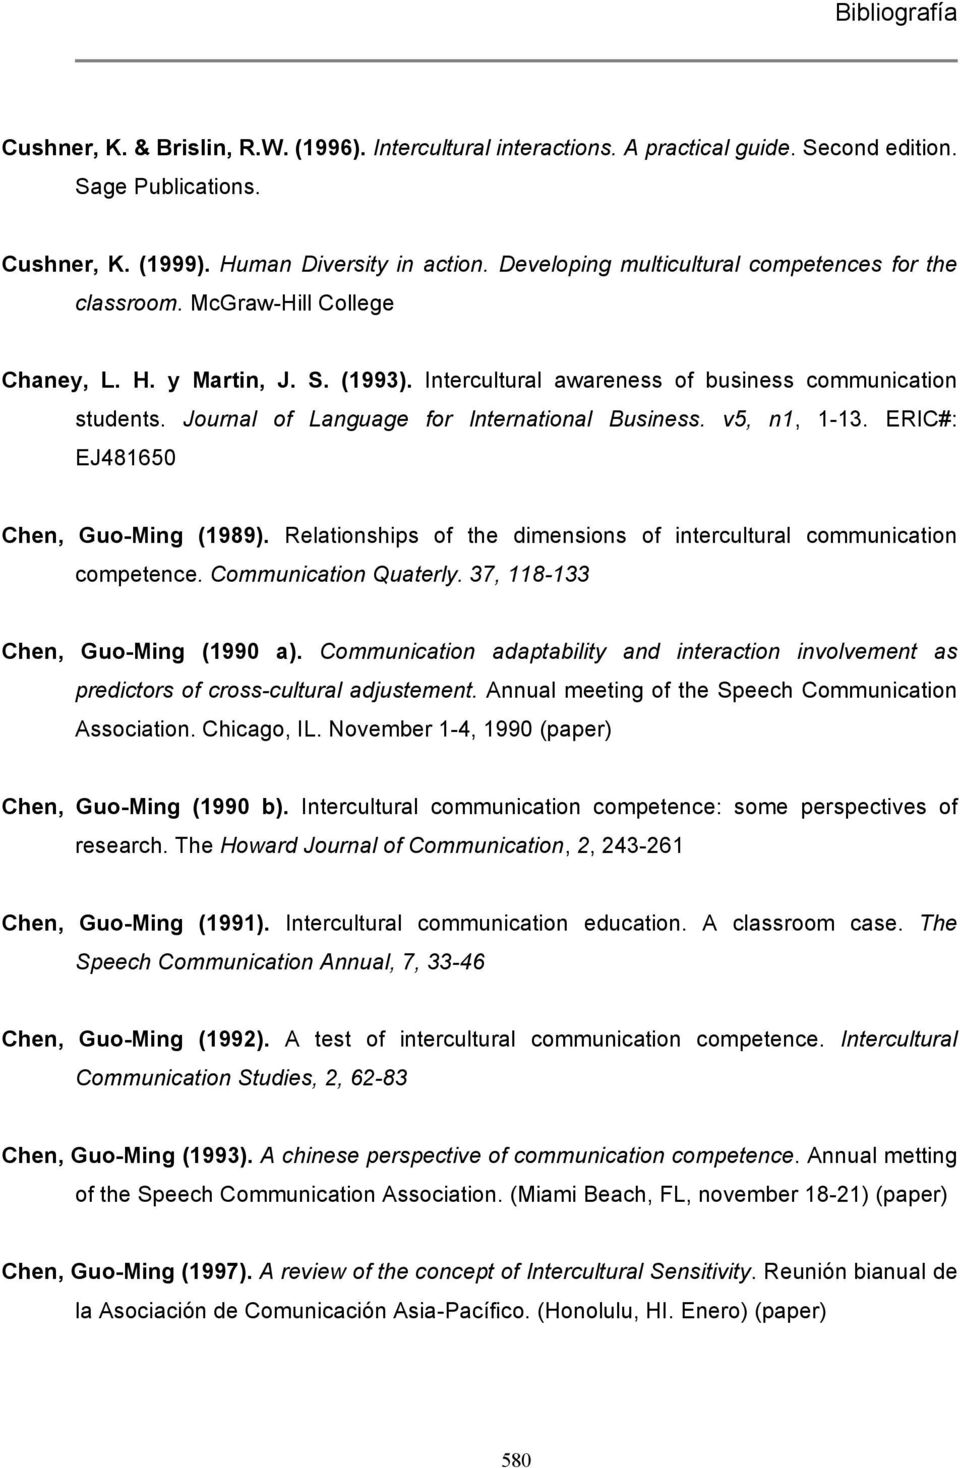 Journal of Language for International Business. v5, n1, 1-13. ERIC#: EJ481650 Chen, Guo-Ming (1989). Relationships of the dimensions of intercultural communication competence. Communication Quaterly.